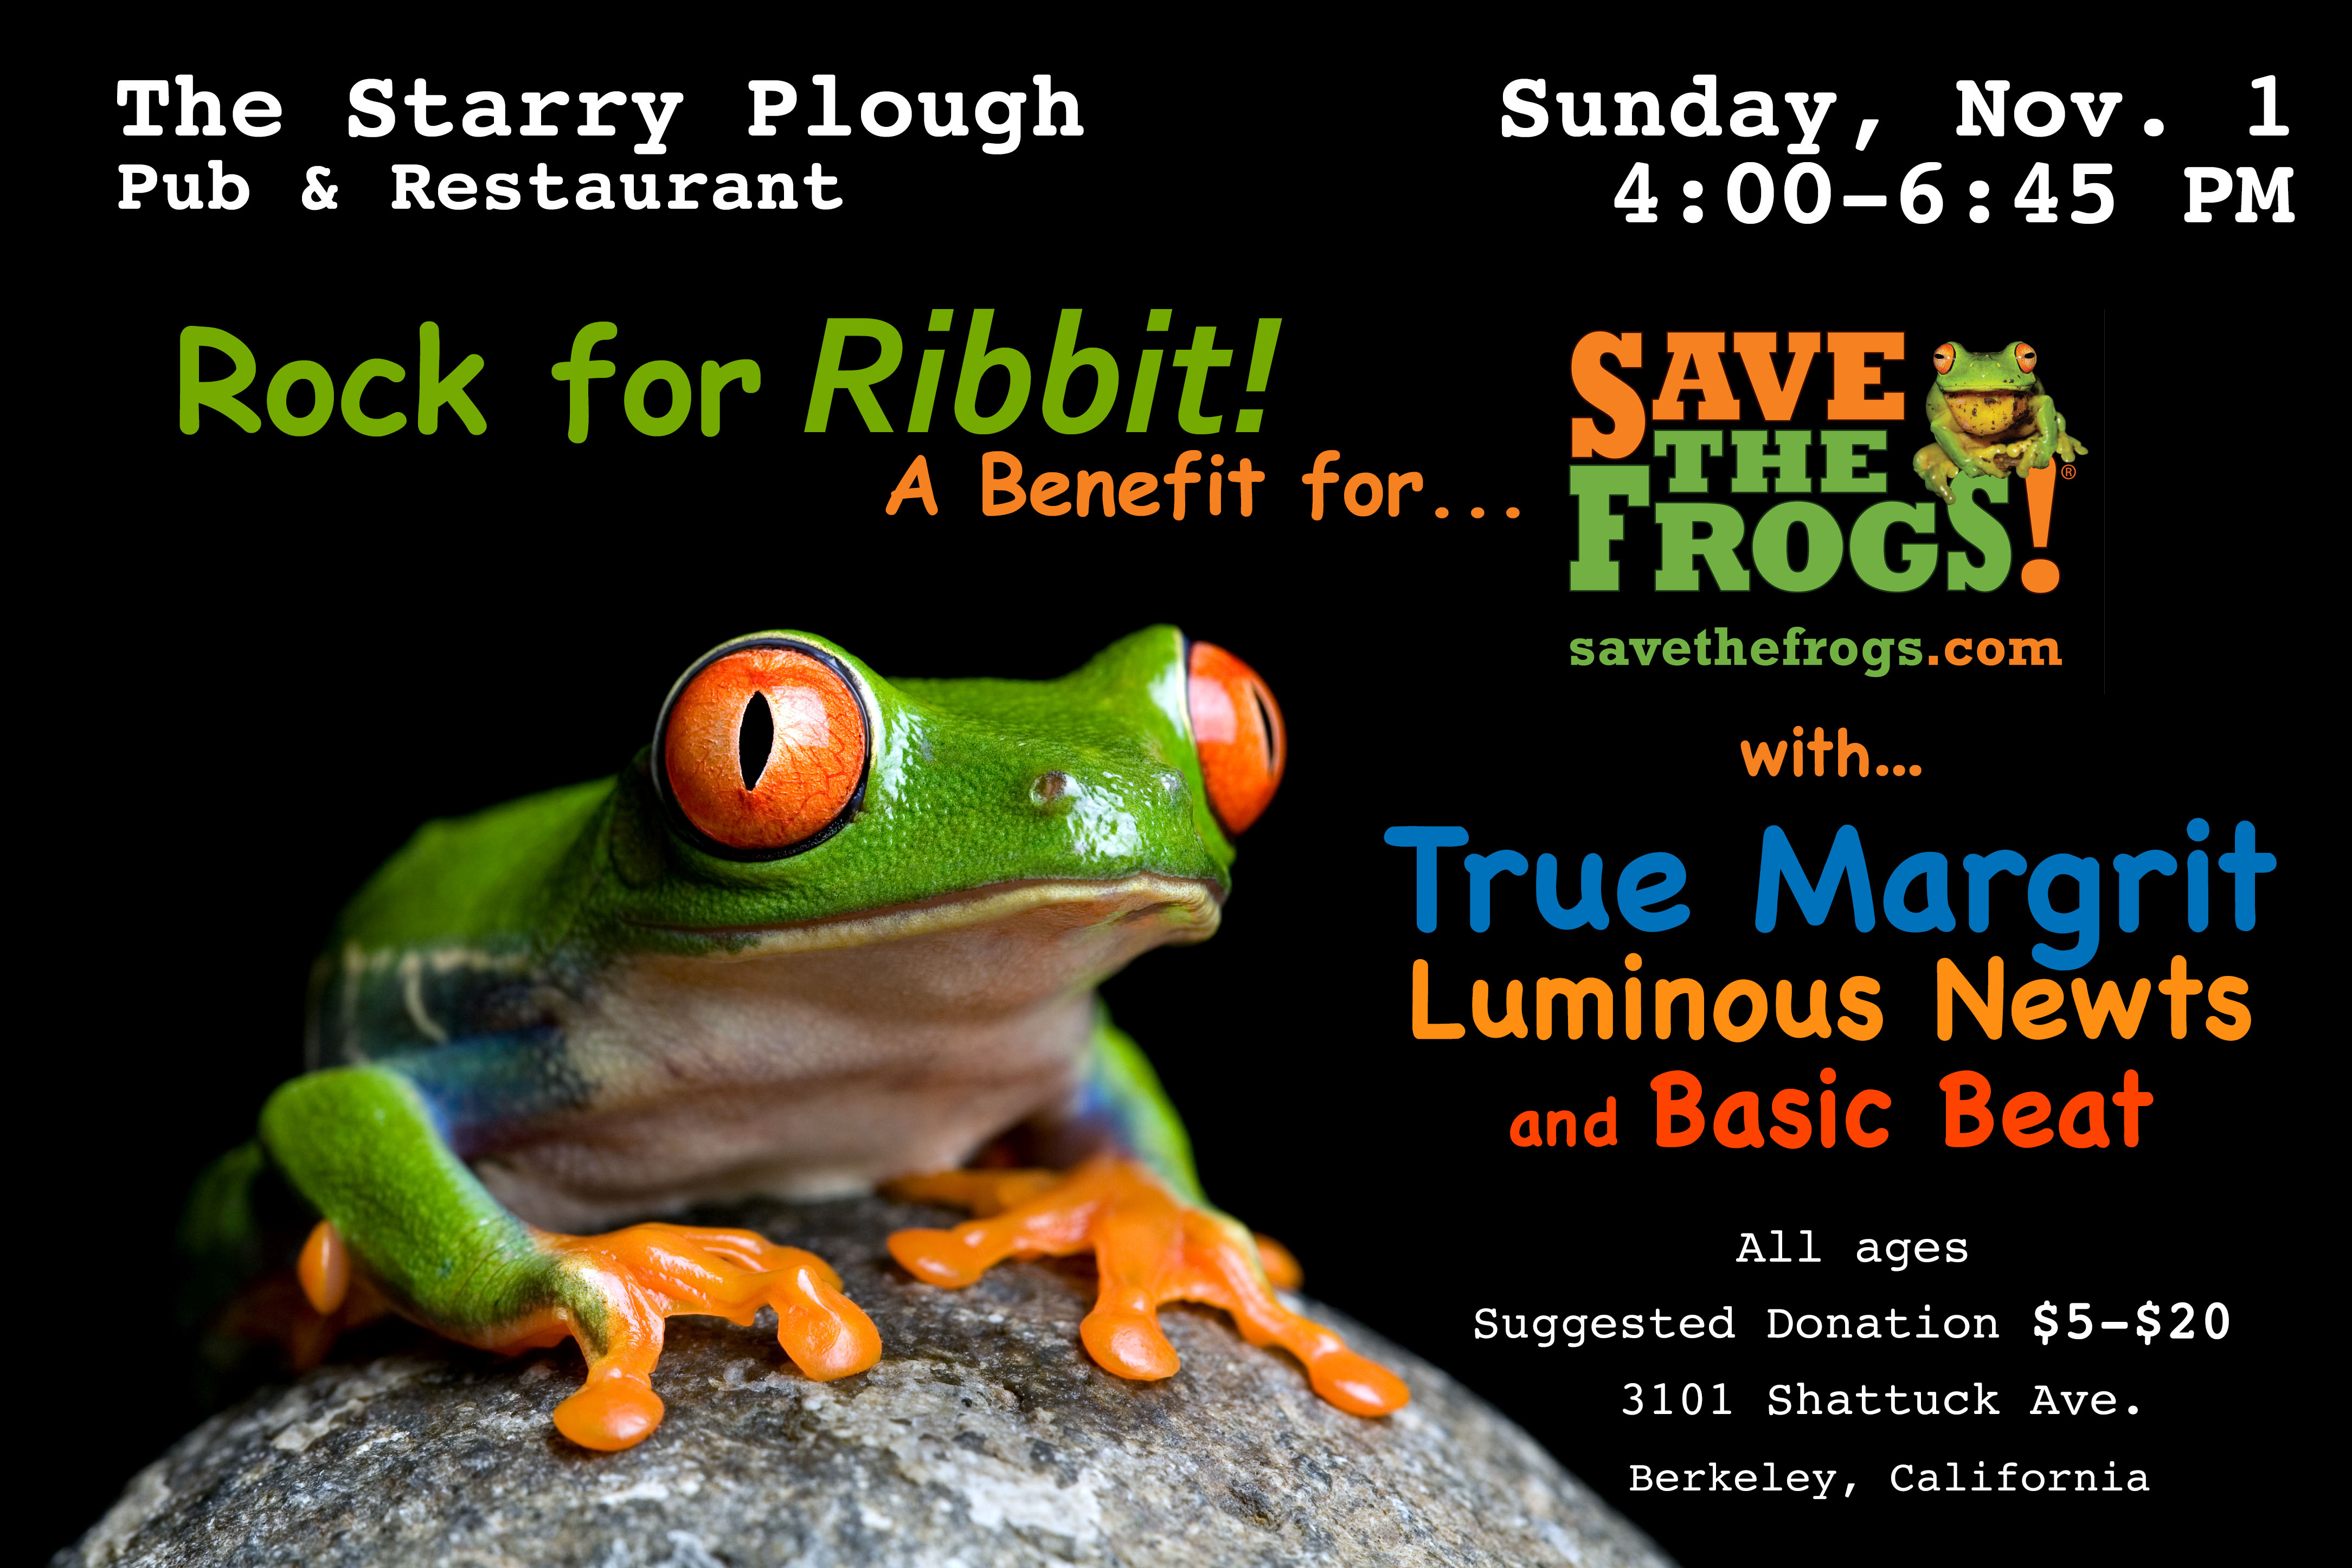 ROCK FOR RIBBIT! A Benefit for SAVE THE FROGS!